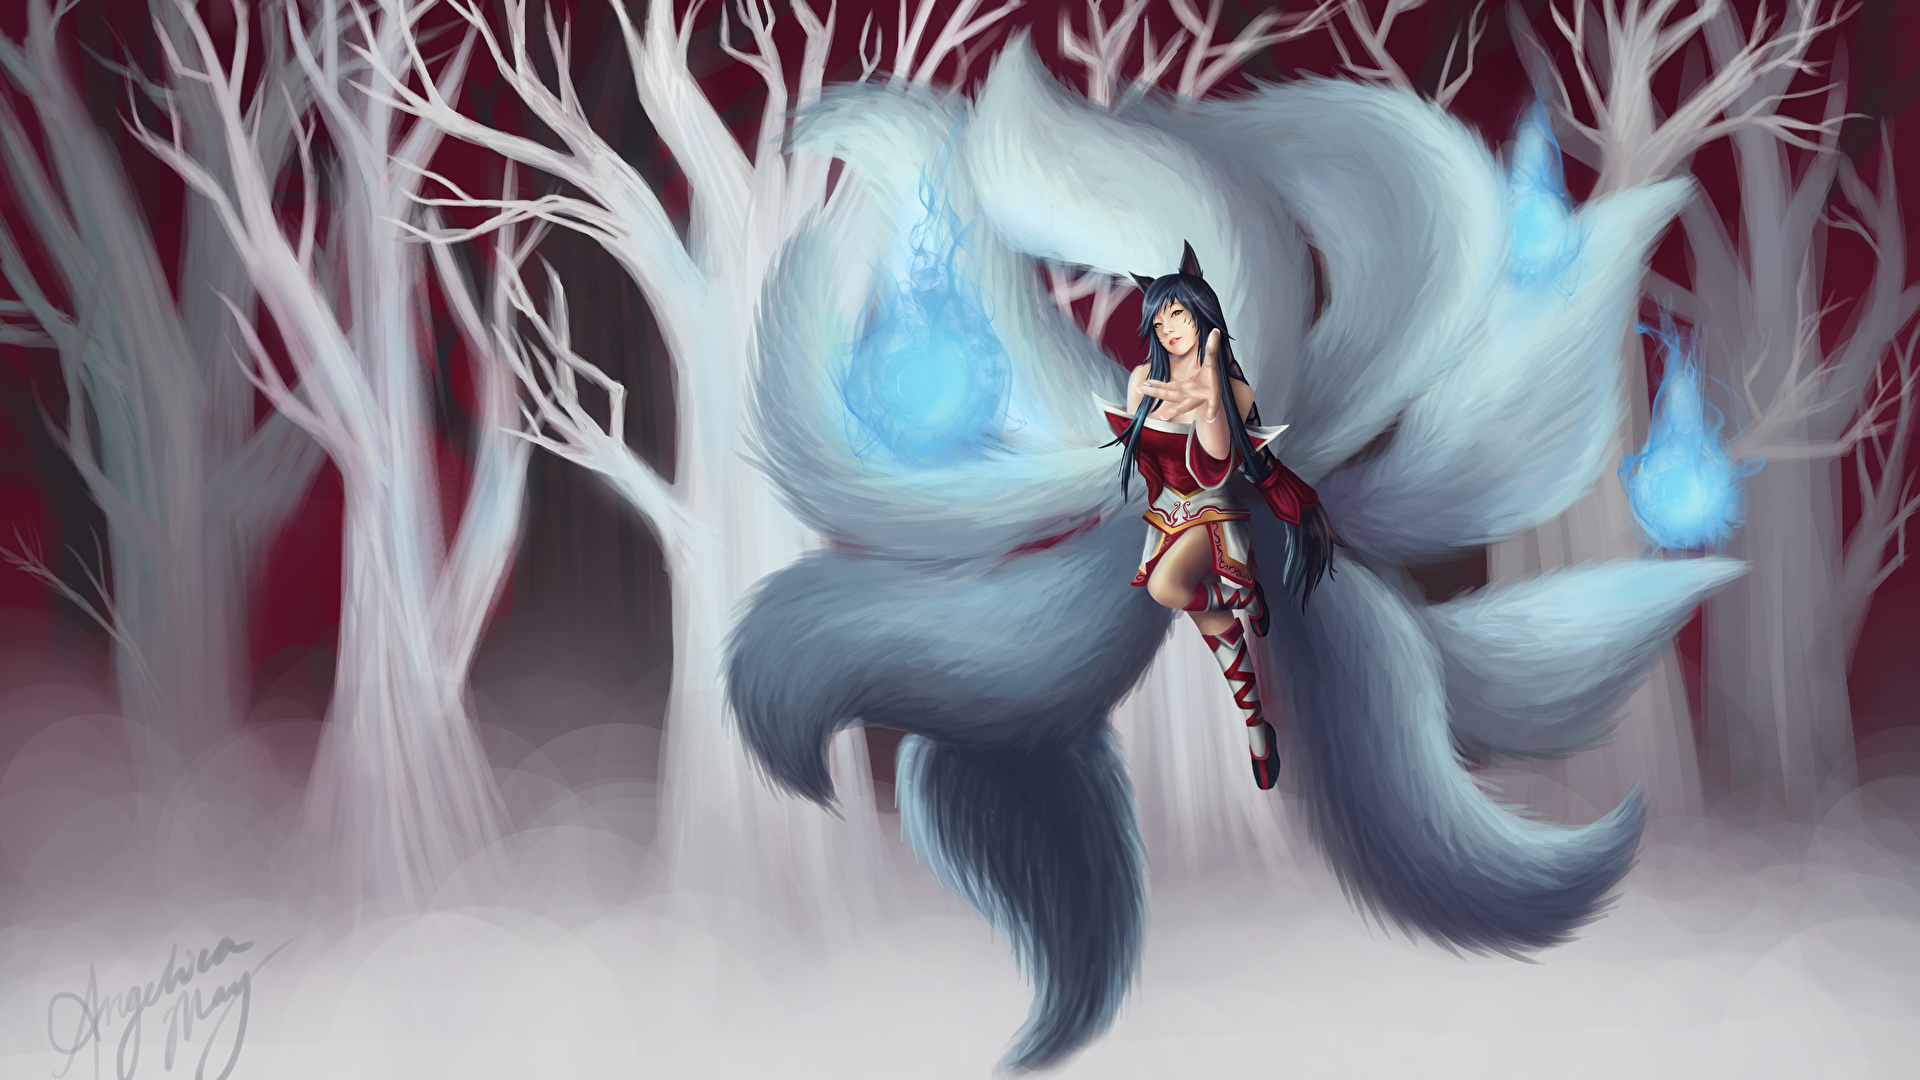 Photos Ahri League Of Legends Female Fantasy Tail Games 1920x1080